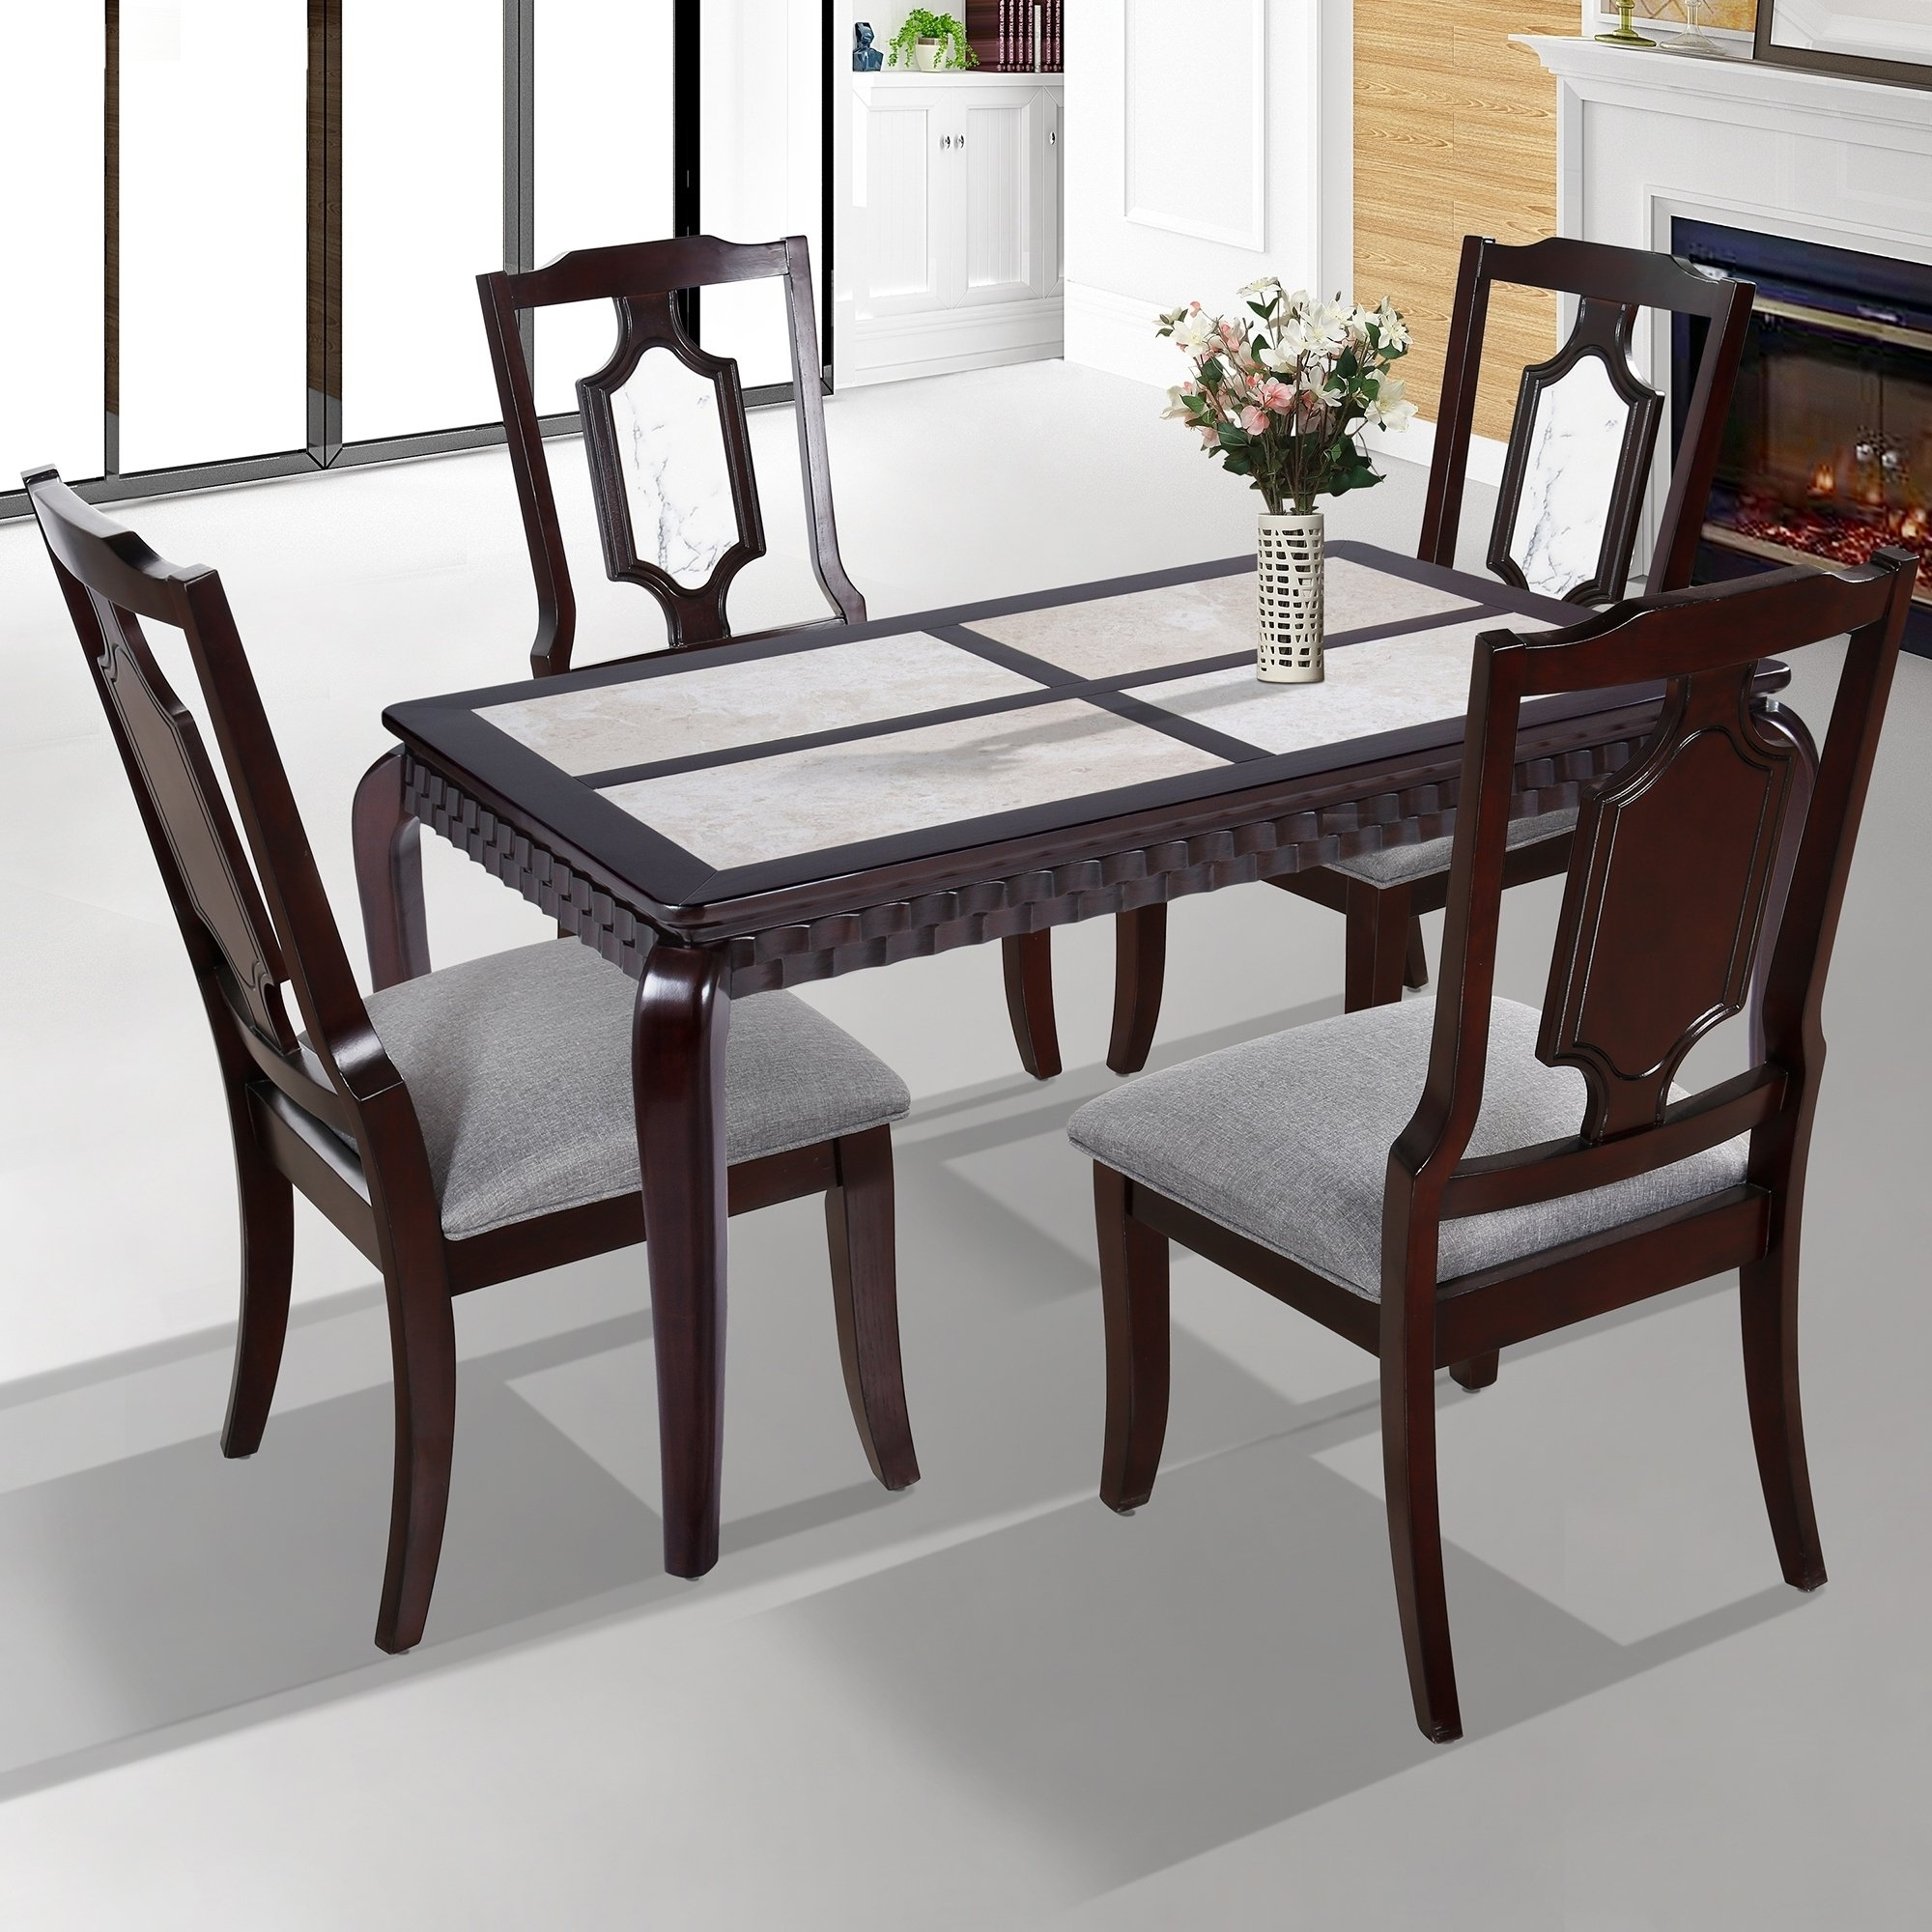 Latest Solid Marble Dining Tables With Regard To Shop Sleeplanner Natural Marble Deluxe Solid Wood Dining Table With (View 10 of 25)